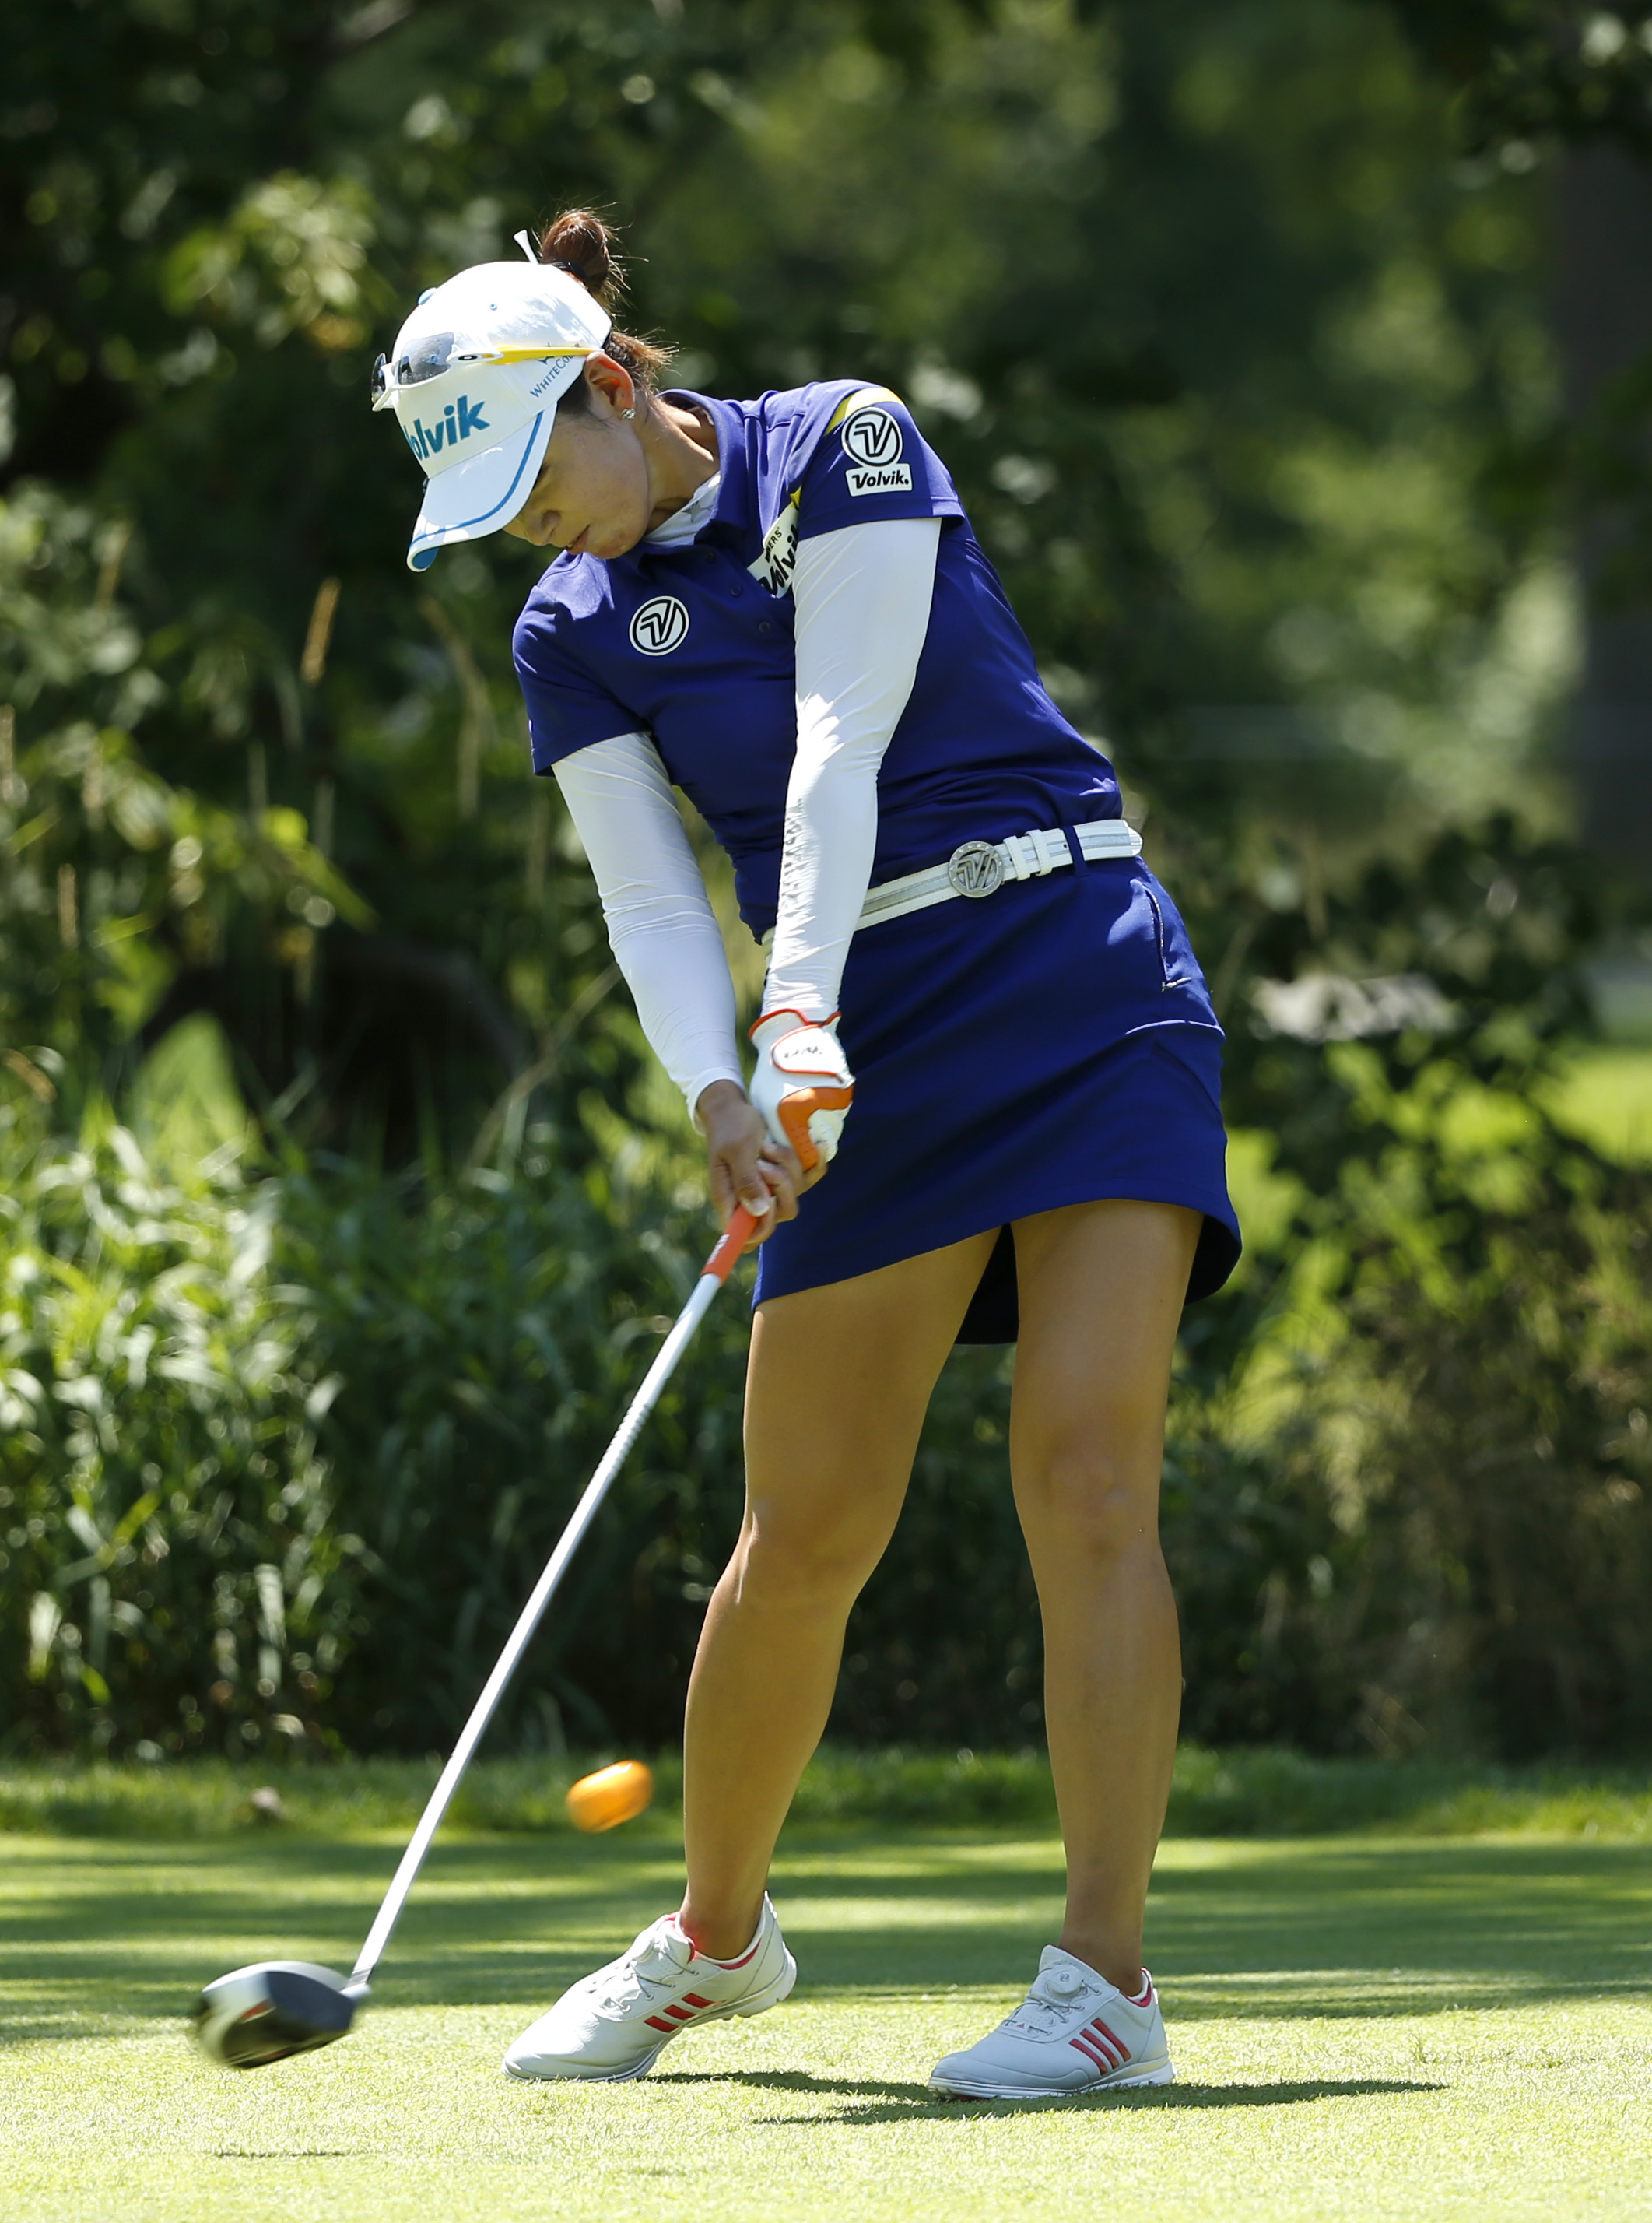 Chella Choi, of South Korea, strikes her tee shot on the fifth hole during the final round of the Women's PGA Championship golf tournament at Olympia Fields Country Club, Sunday, July 2, 2017, in Olympia Fields, Ill. (AP Photo/Charles Rex Arbogast)